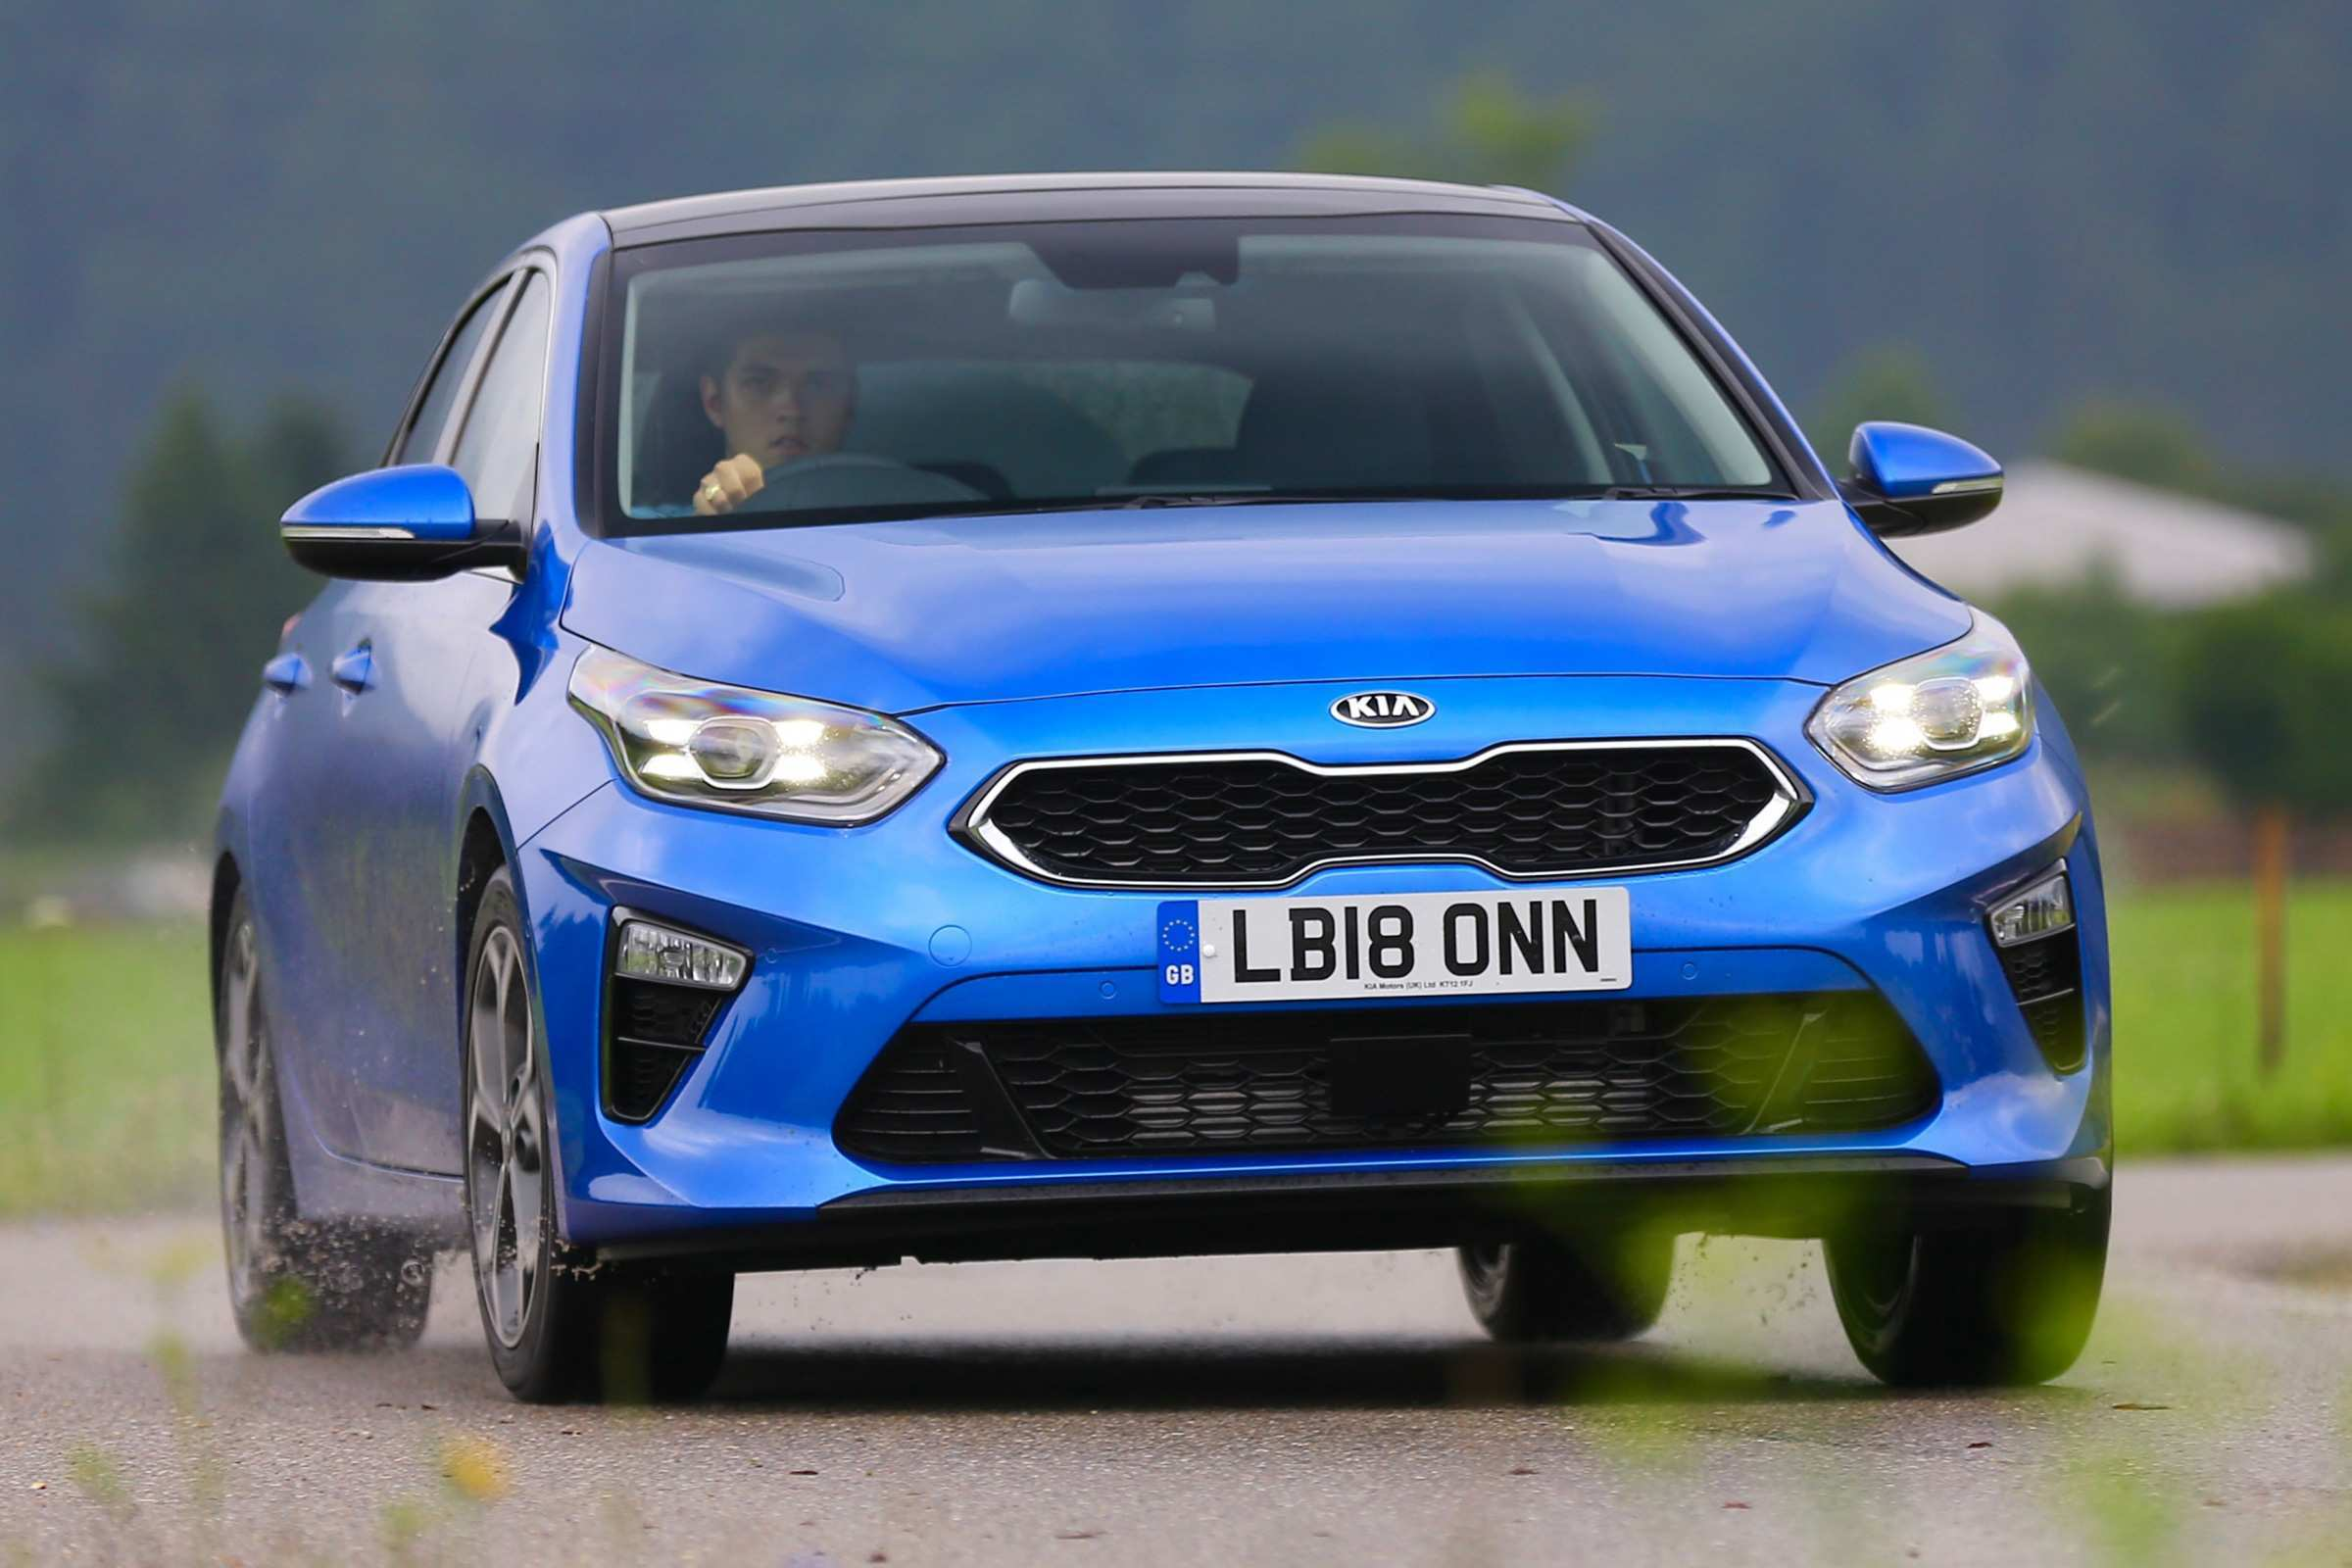 50 Great Best Kia Ceed 2019 Youtube New Review Redesign for Best Kia Ceed 2019 Youtube New Review